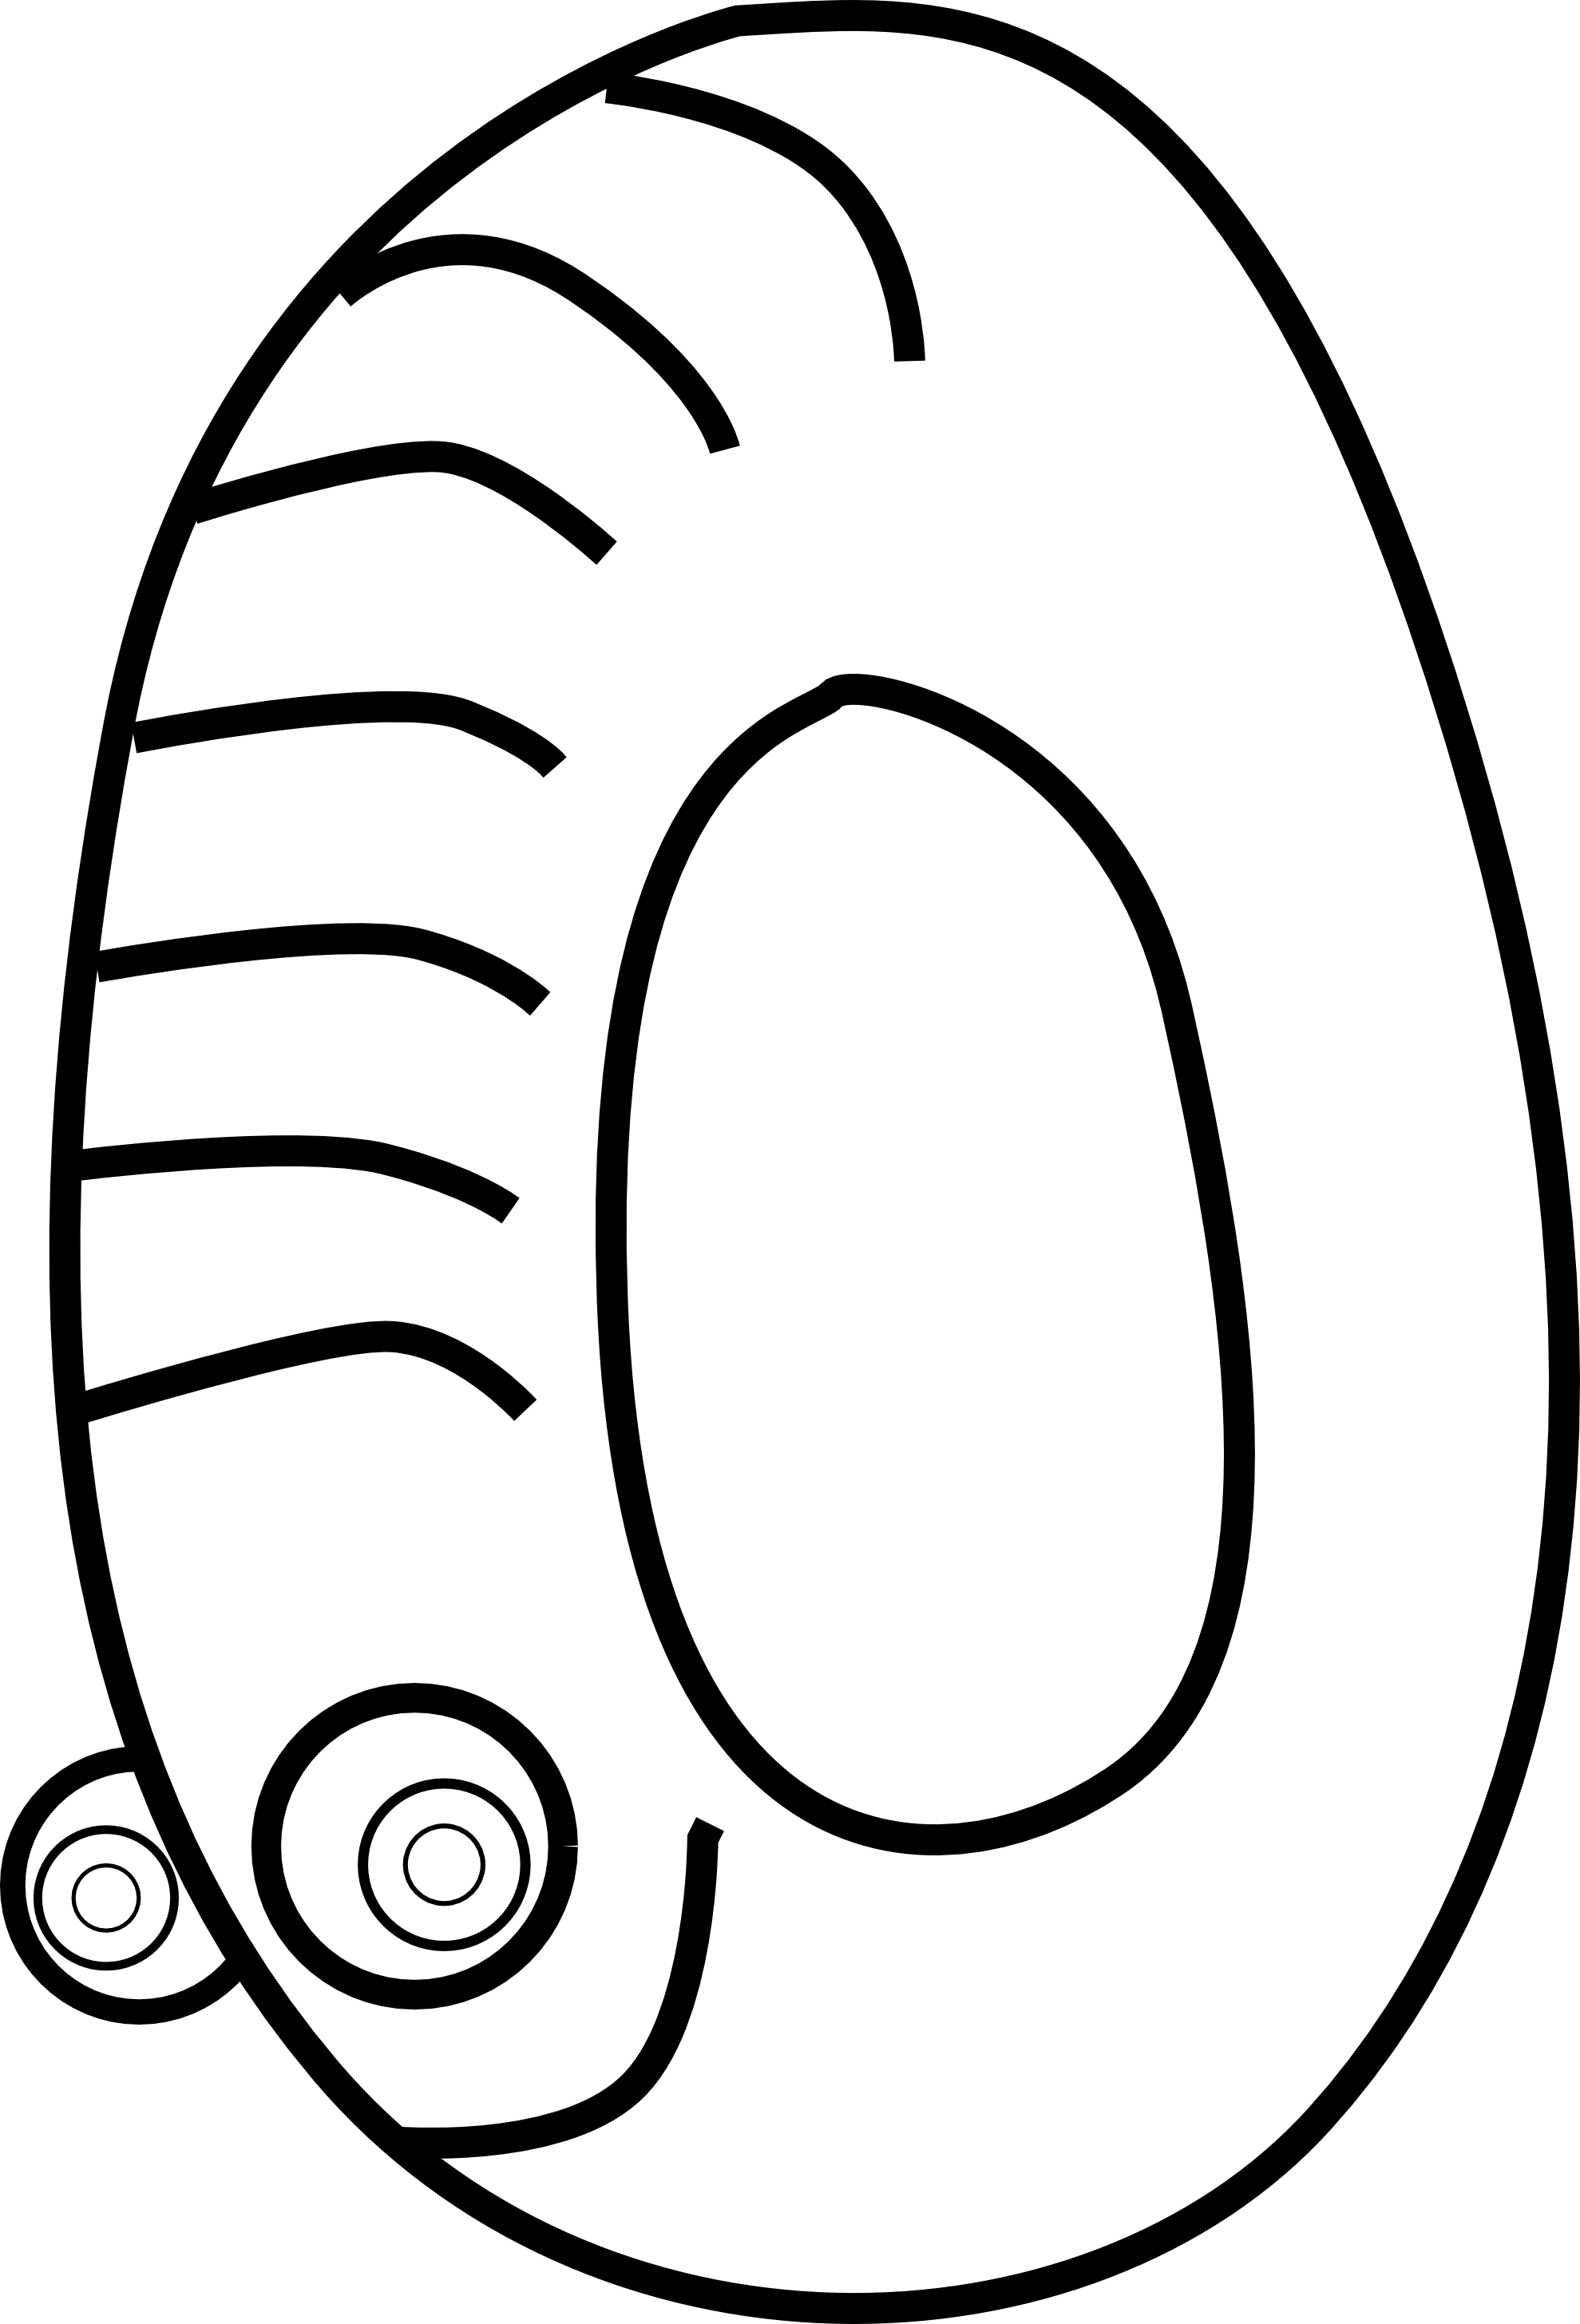 Numbers 1 to 10 clipart black and white picture black and white Number Animals Black White | Clipart Panda - Free Clipart Images picture black and white